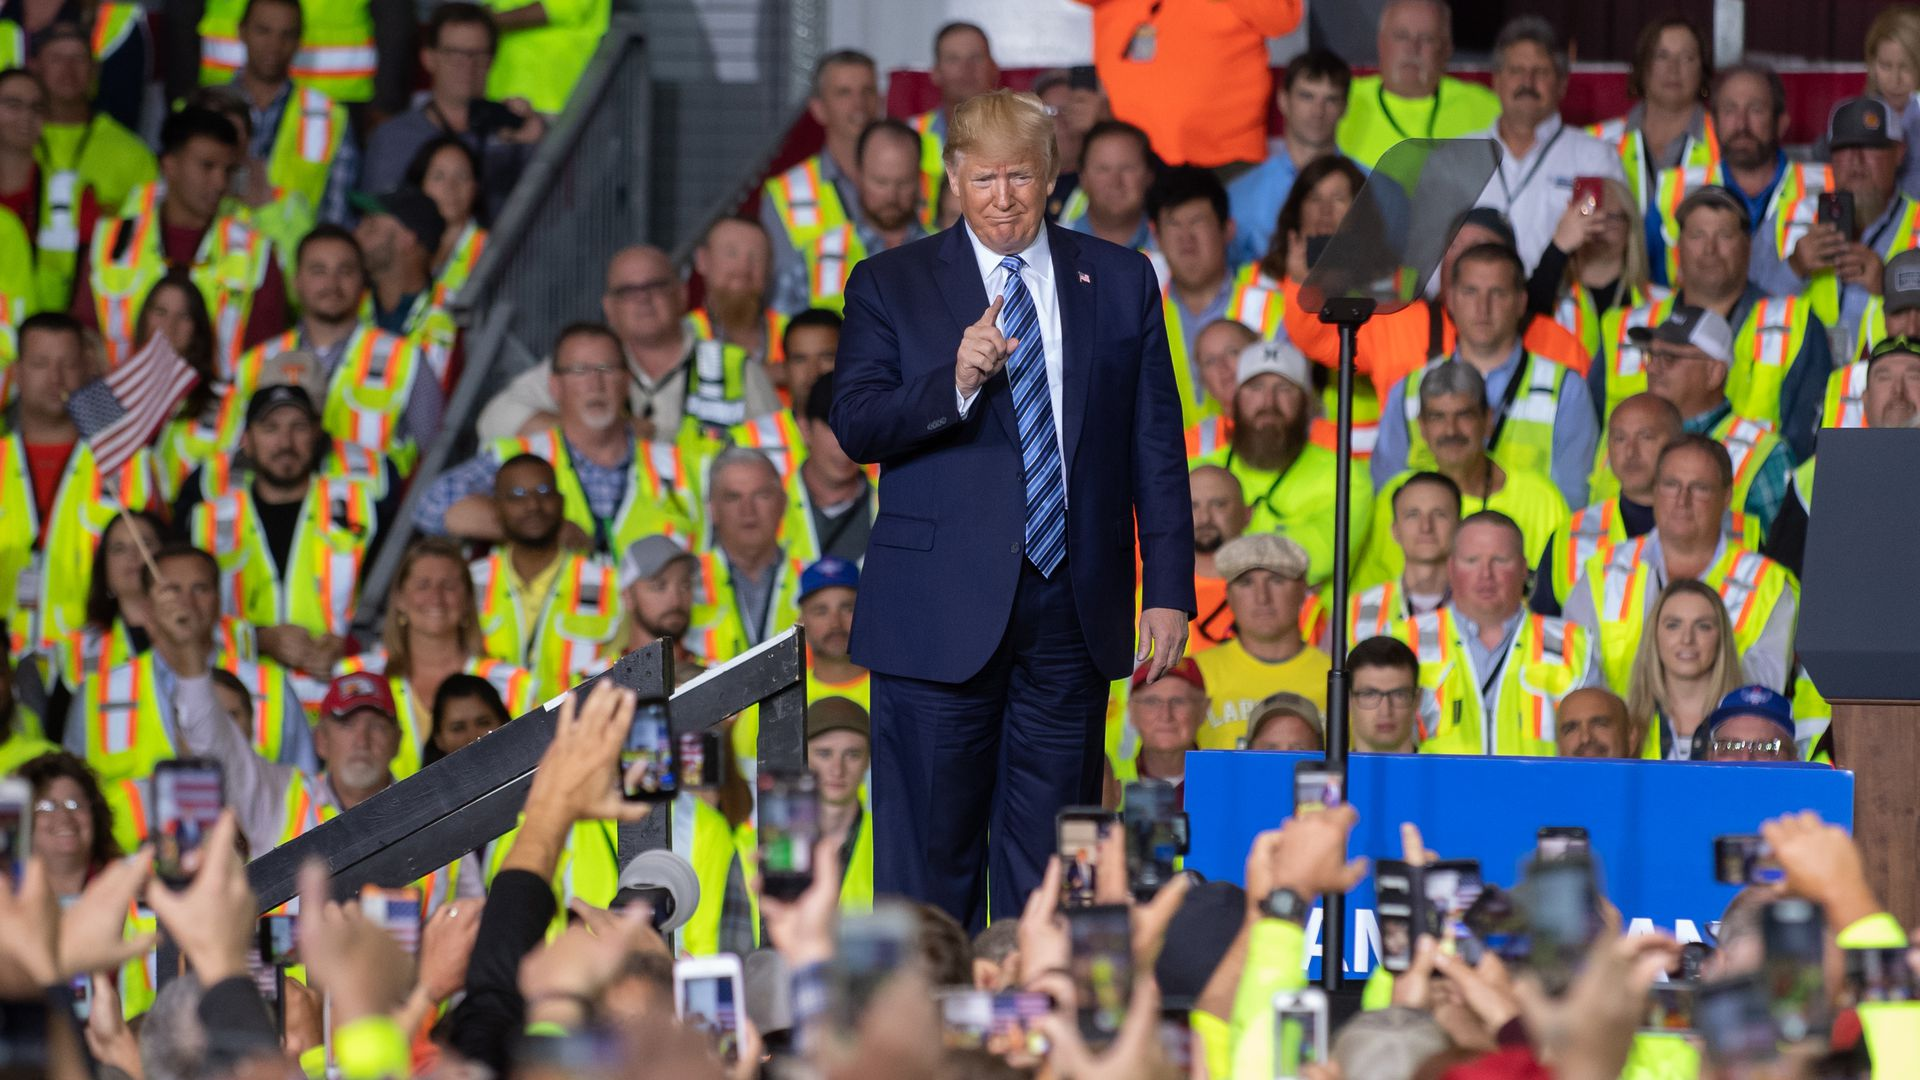 Shell union workers in Pennsylvania told to attend Trump speech or lose out on wages: Reports